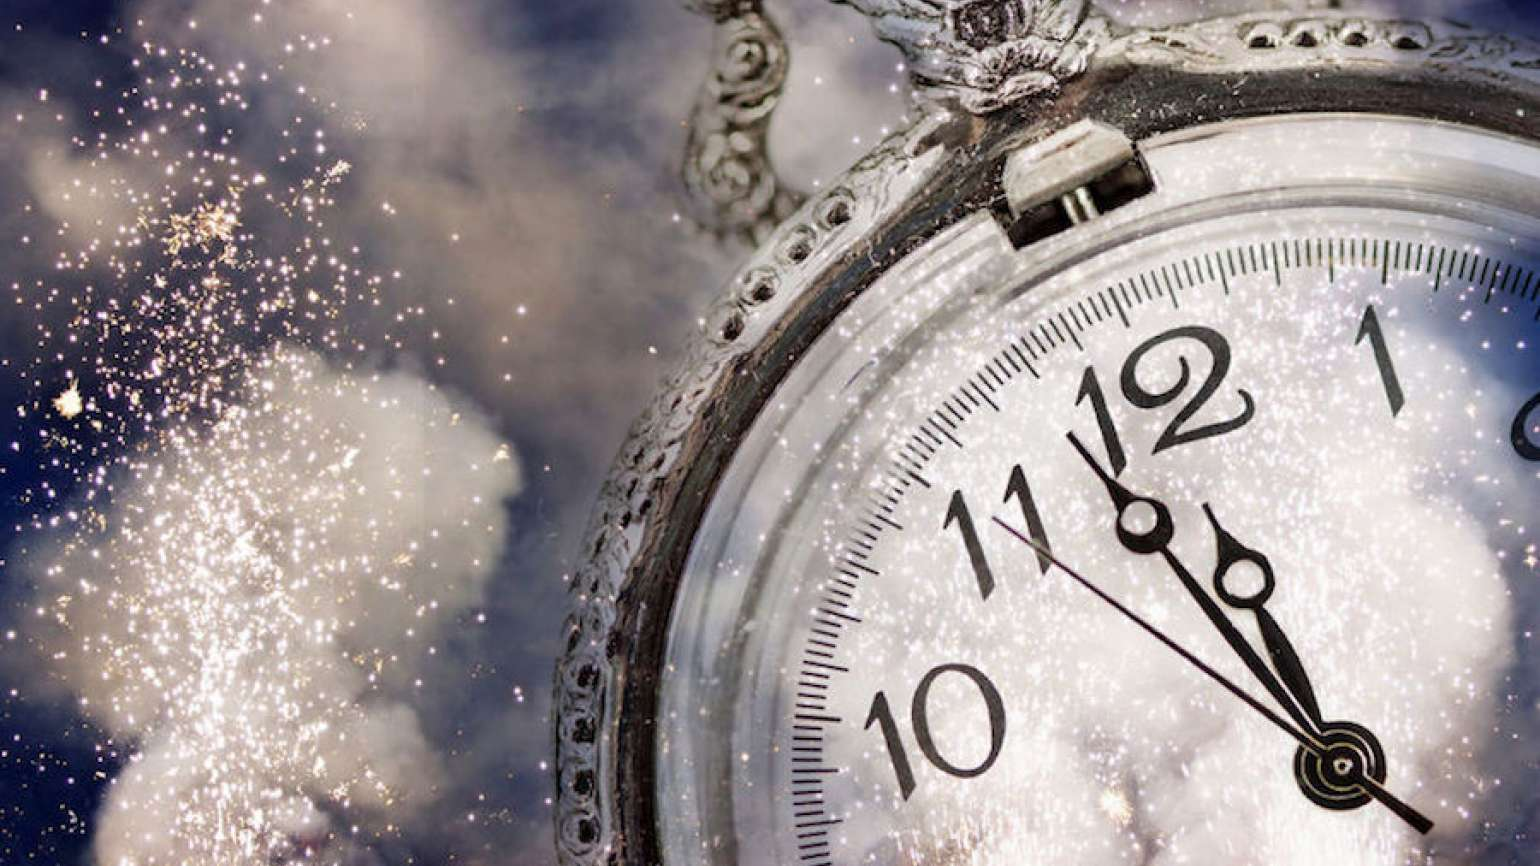 Clock showing a minute before midnight. Photo: 123RF(r)